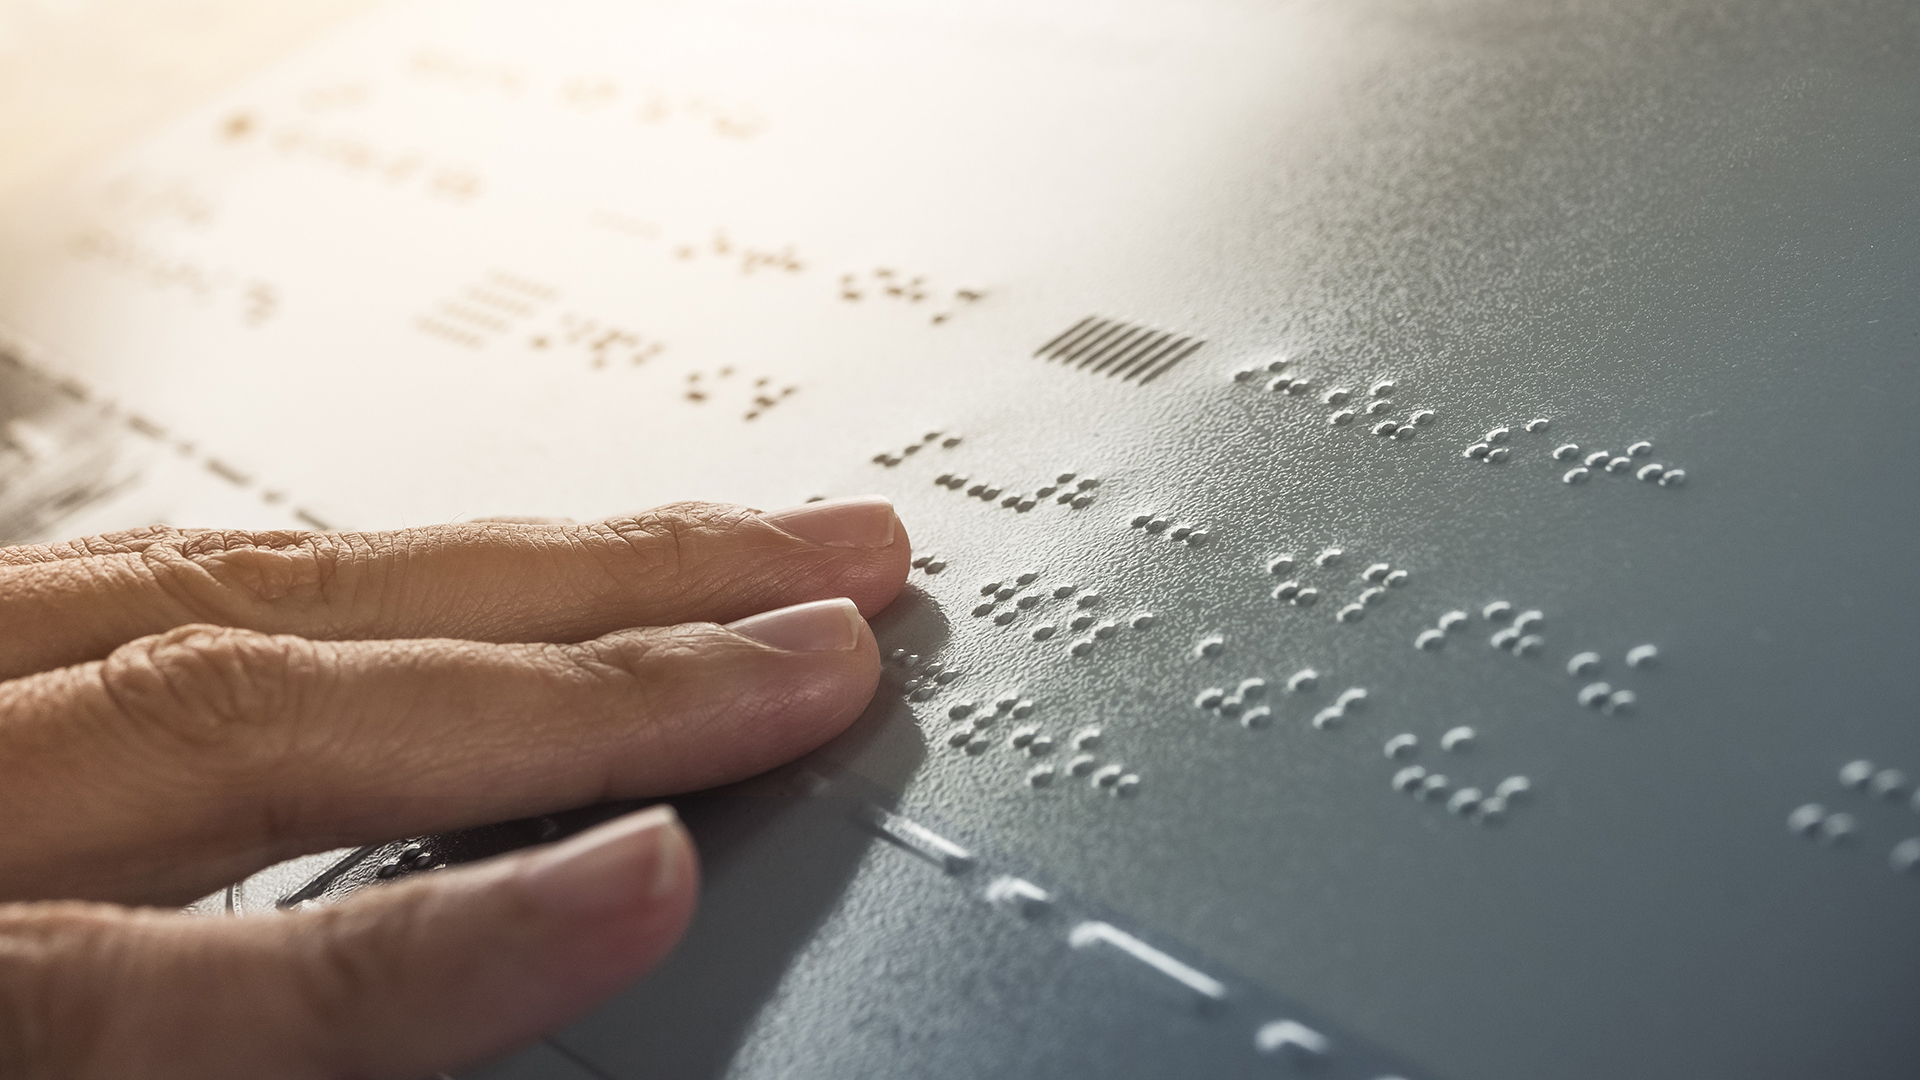 Braille (invented by a 15-year-old)